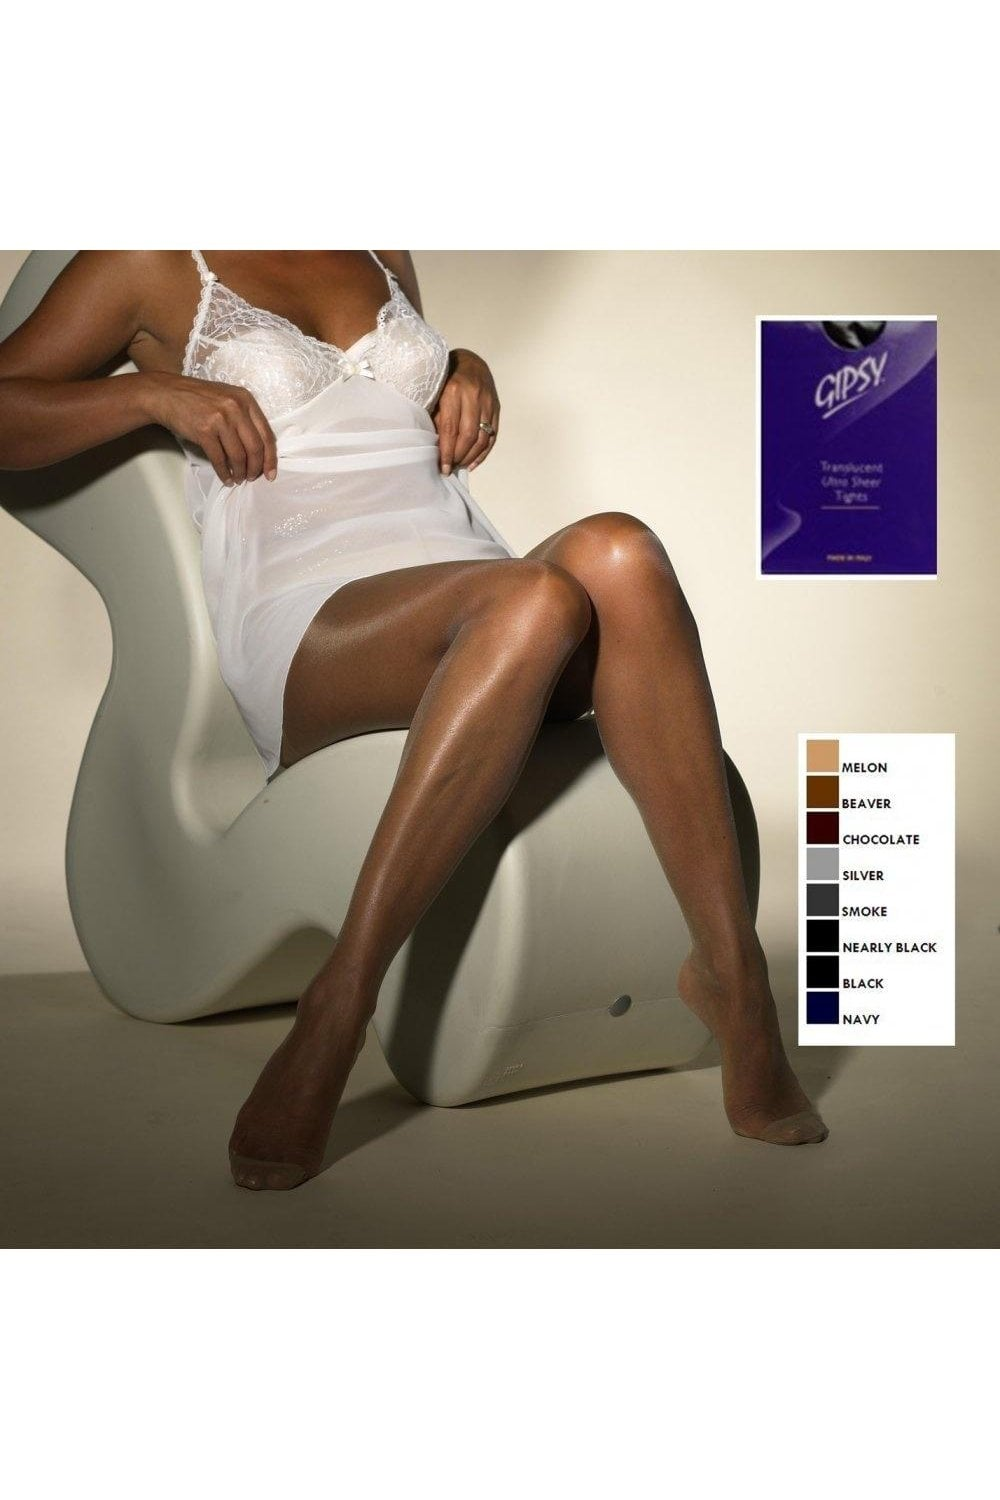 4644b8df945 Tights For Darker Skin Tones From Tights Tights Tights